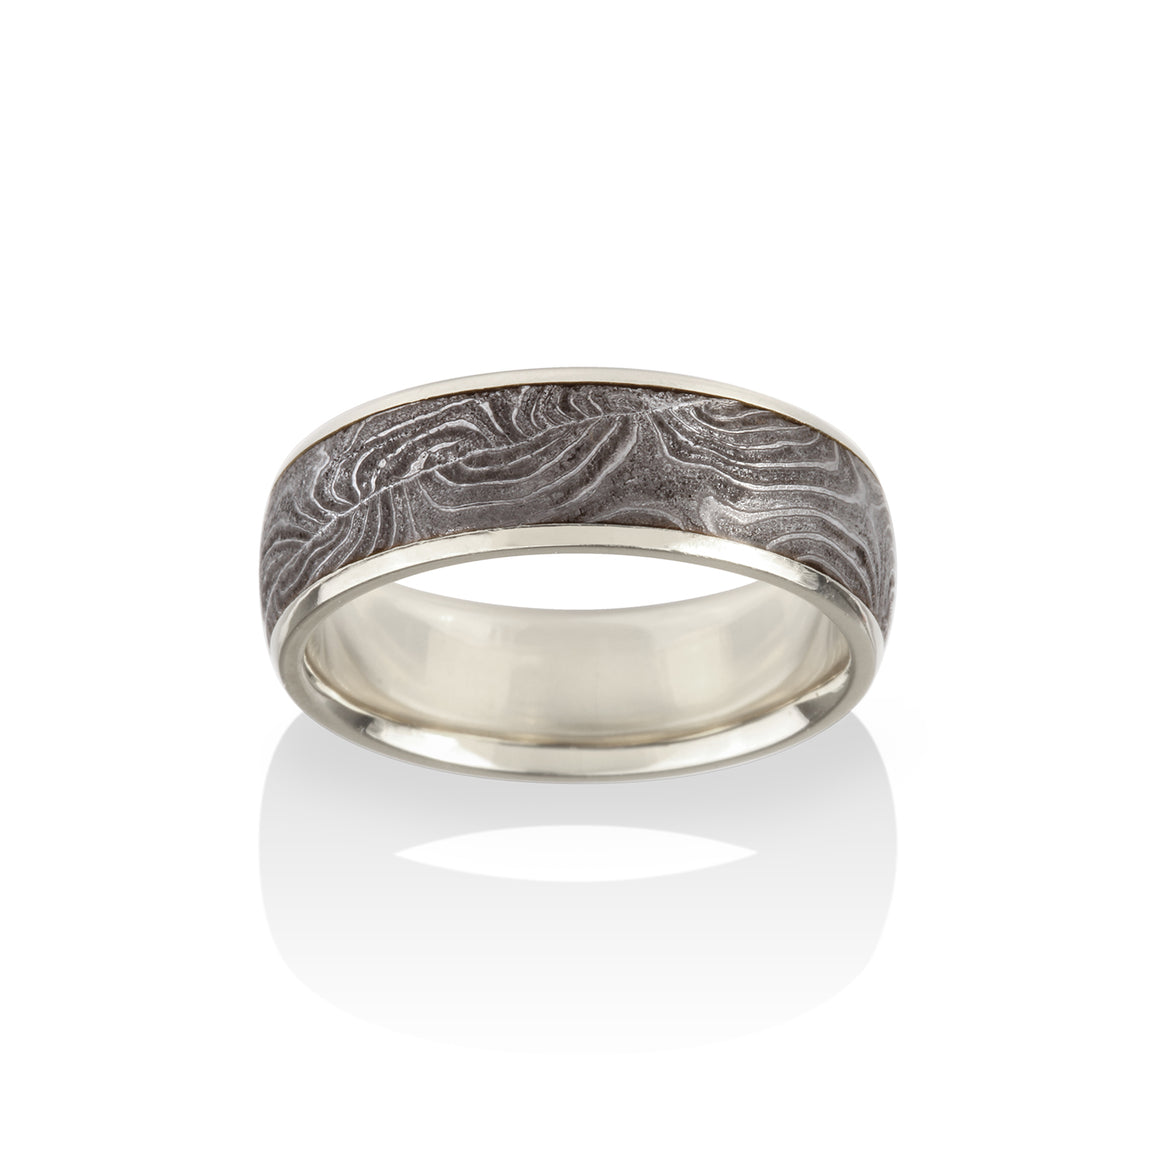 Chris Ploof 18K Palladium White Gold Channel Double Barrel Damascus Ring